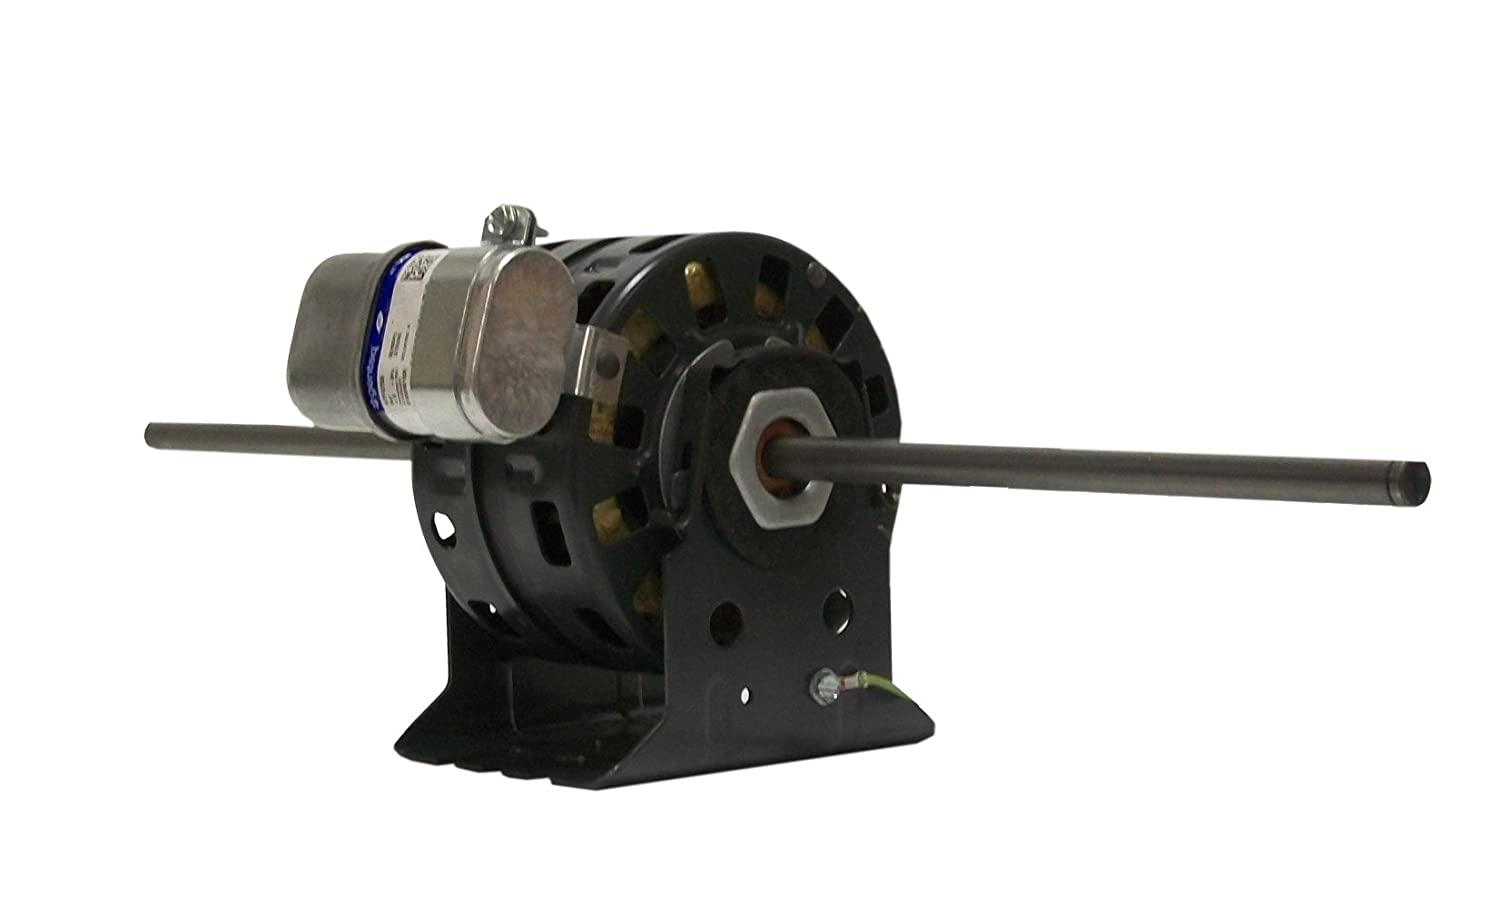 Fasco D1055 5.0-Inch Diameter PSC Motor, 1/12-1/30-1/50 HP, 115/127 Volts, 1375 RPM, 3 Speed, 1.4-.6-.4 Amps, DS Rotation, Sleeve Bearing by Fasco B007VJVVR4